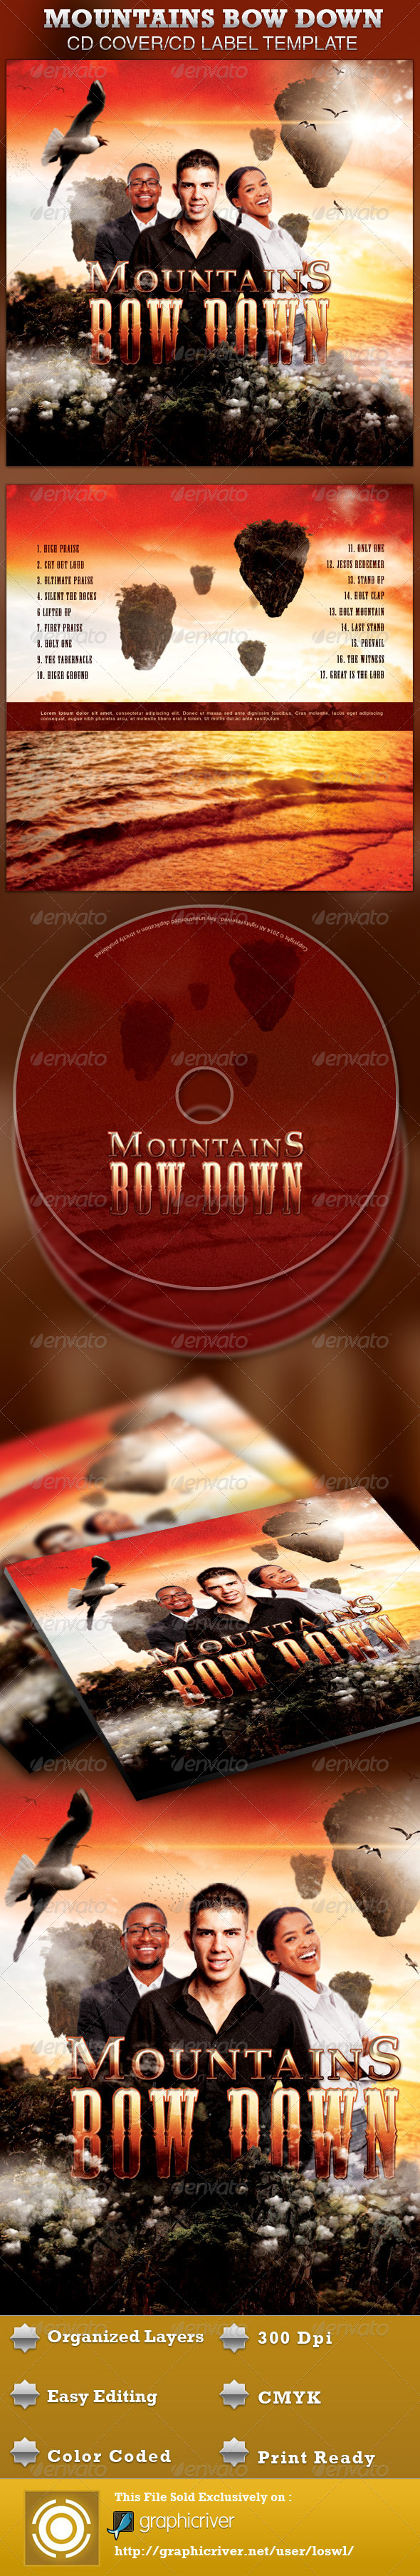 Mountains Bow Down CD Artwork Template - CD & DVD artwork Print Templates